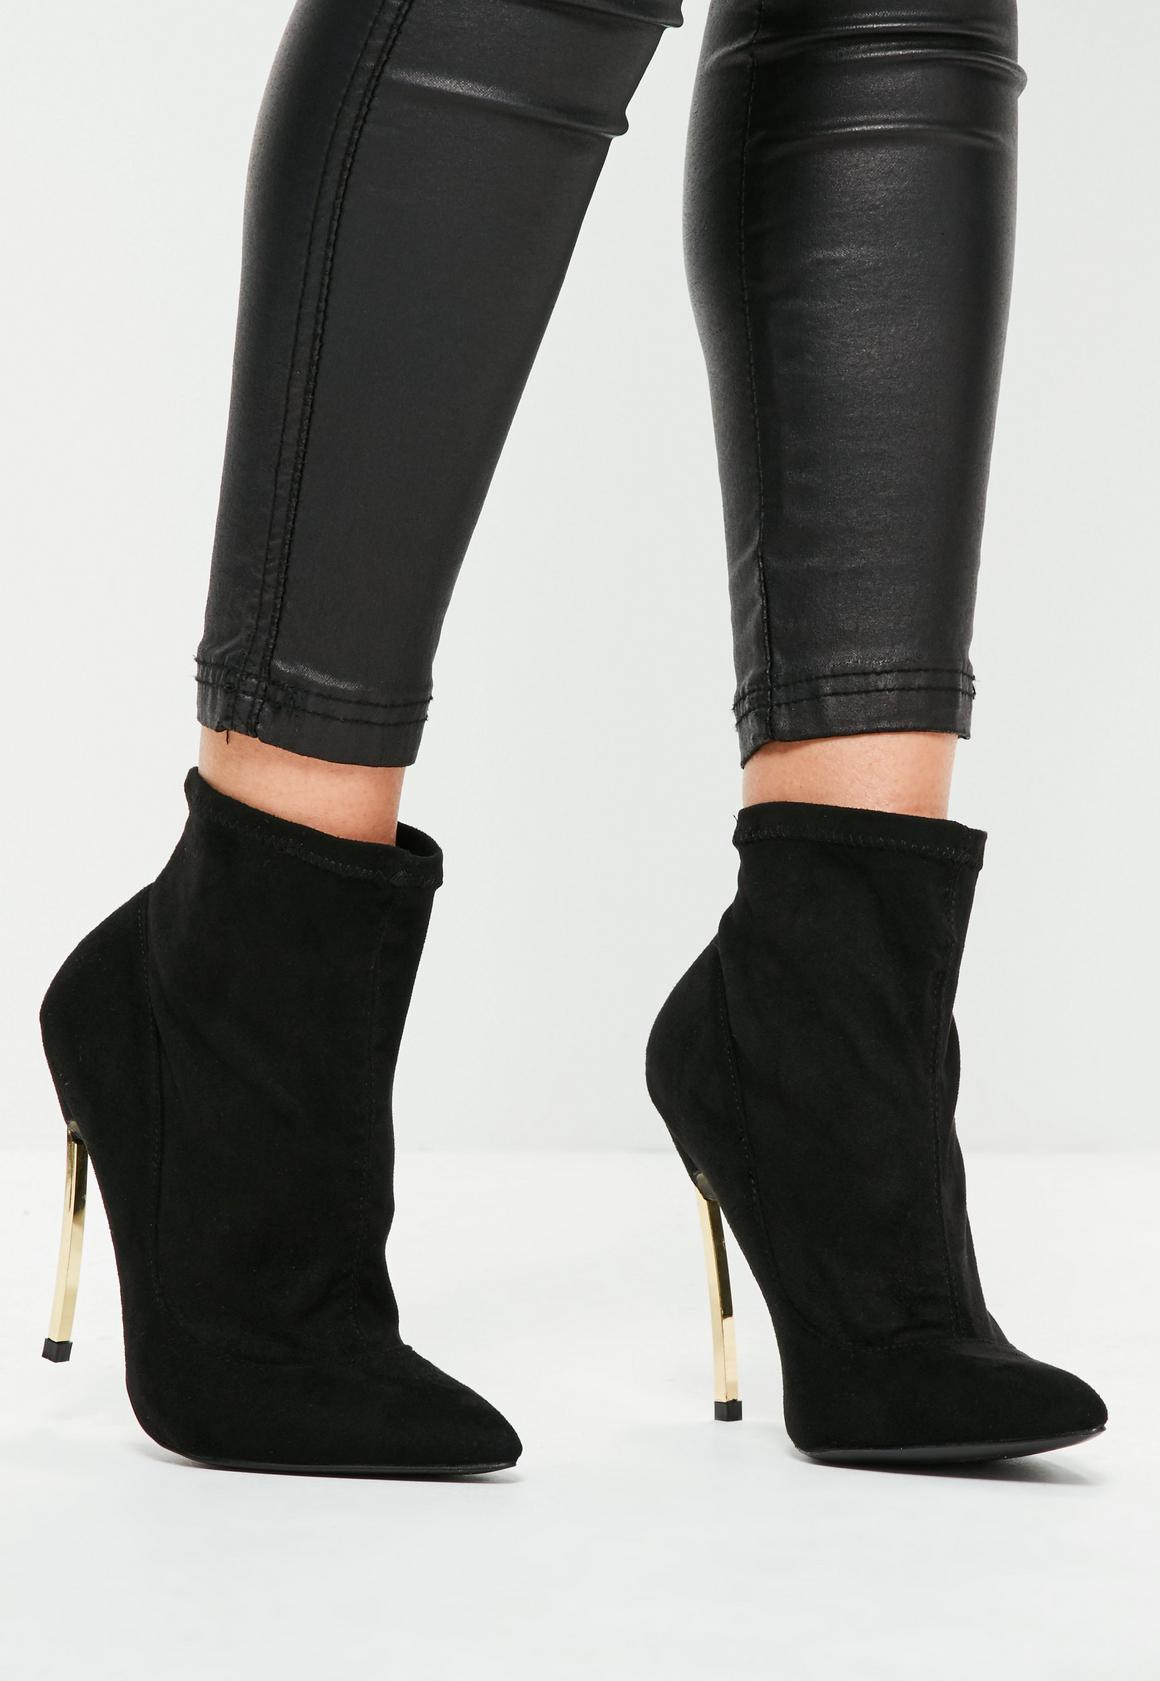 Black Curved Metal Heel Ankle Boots - Missguided